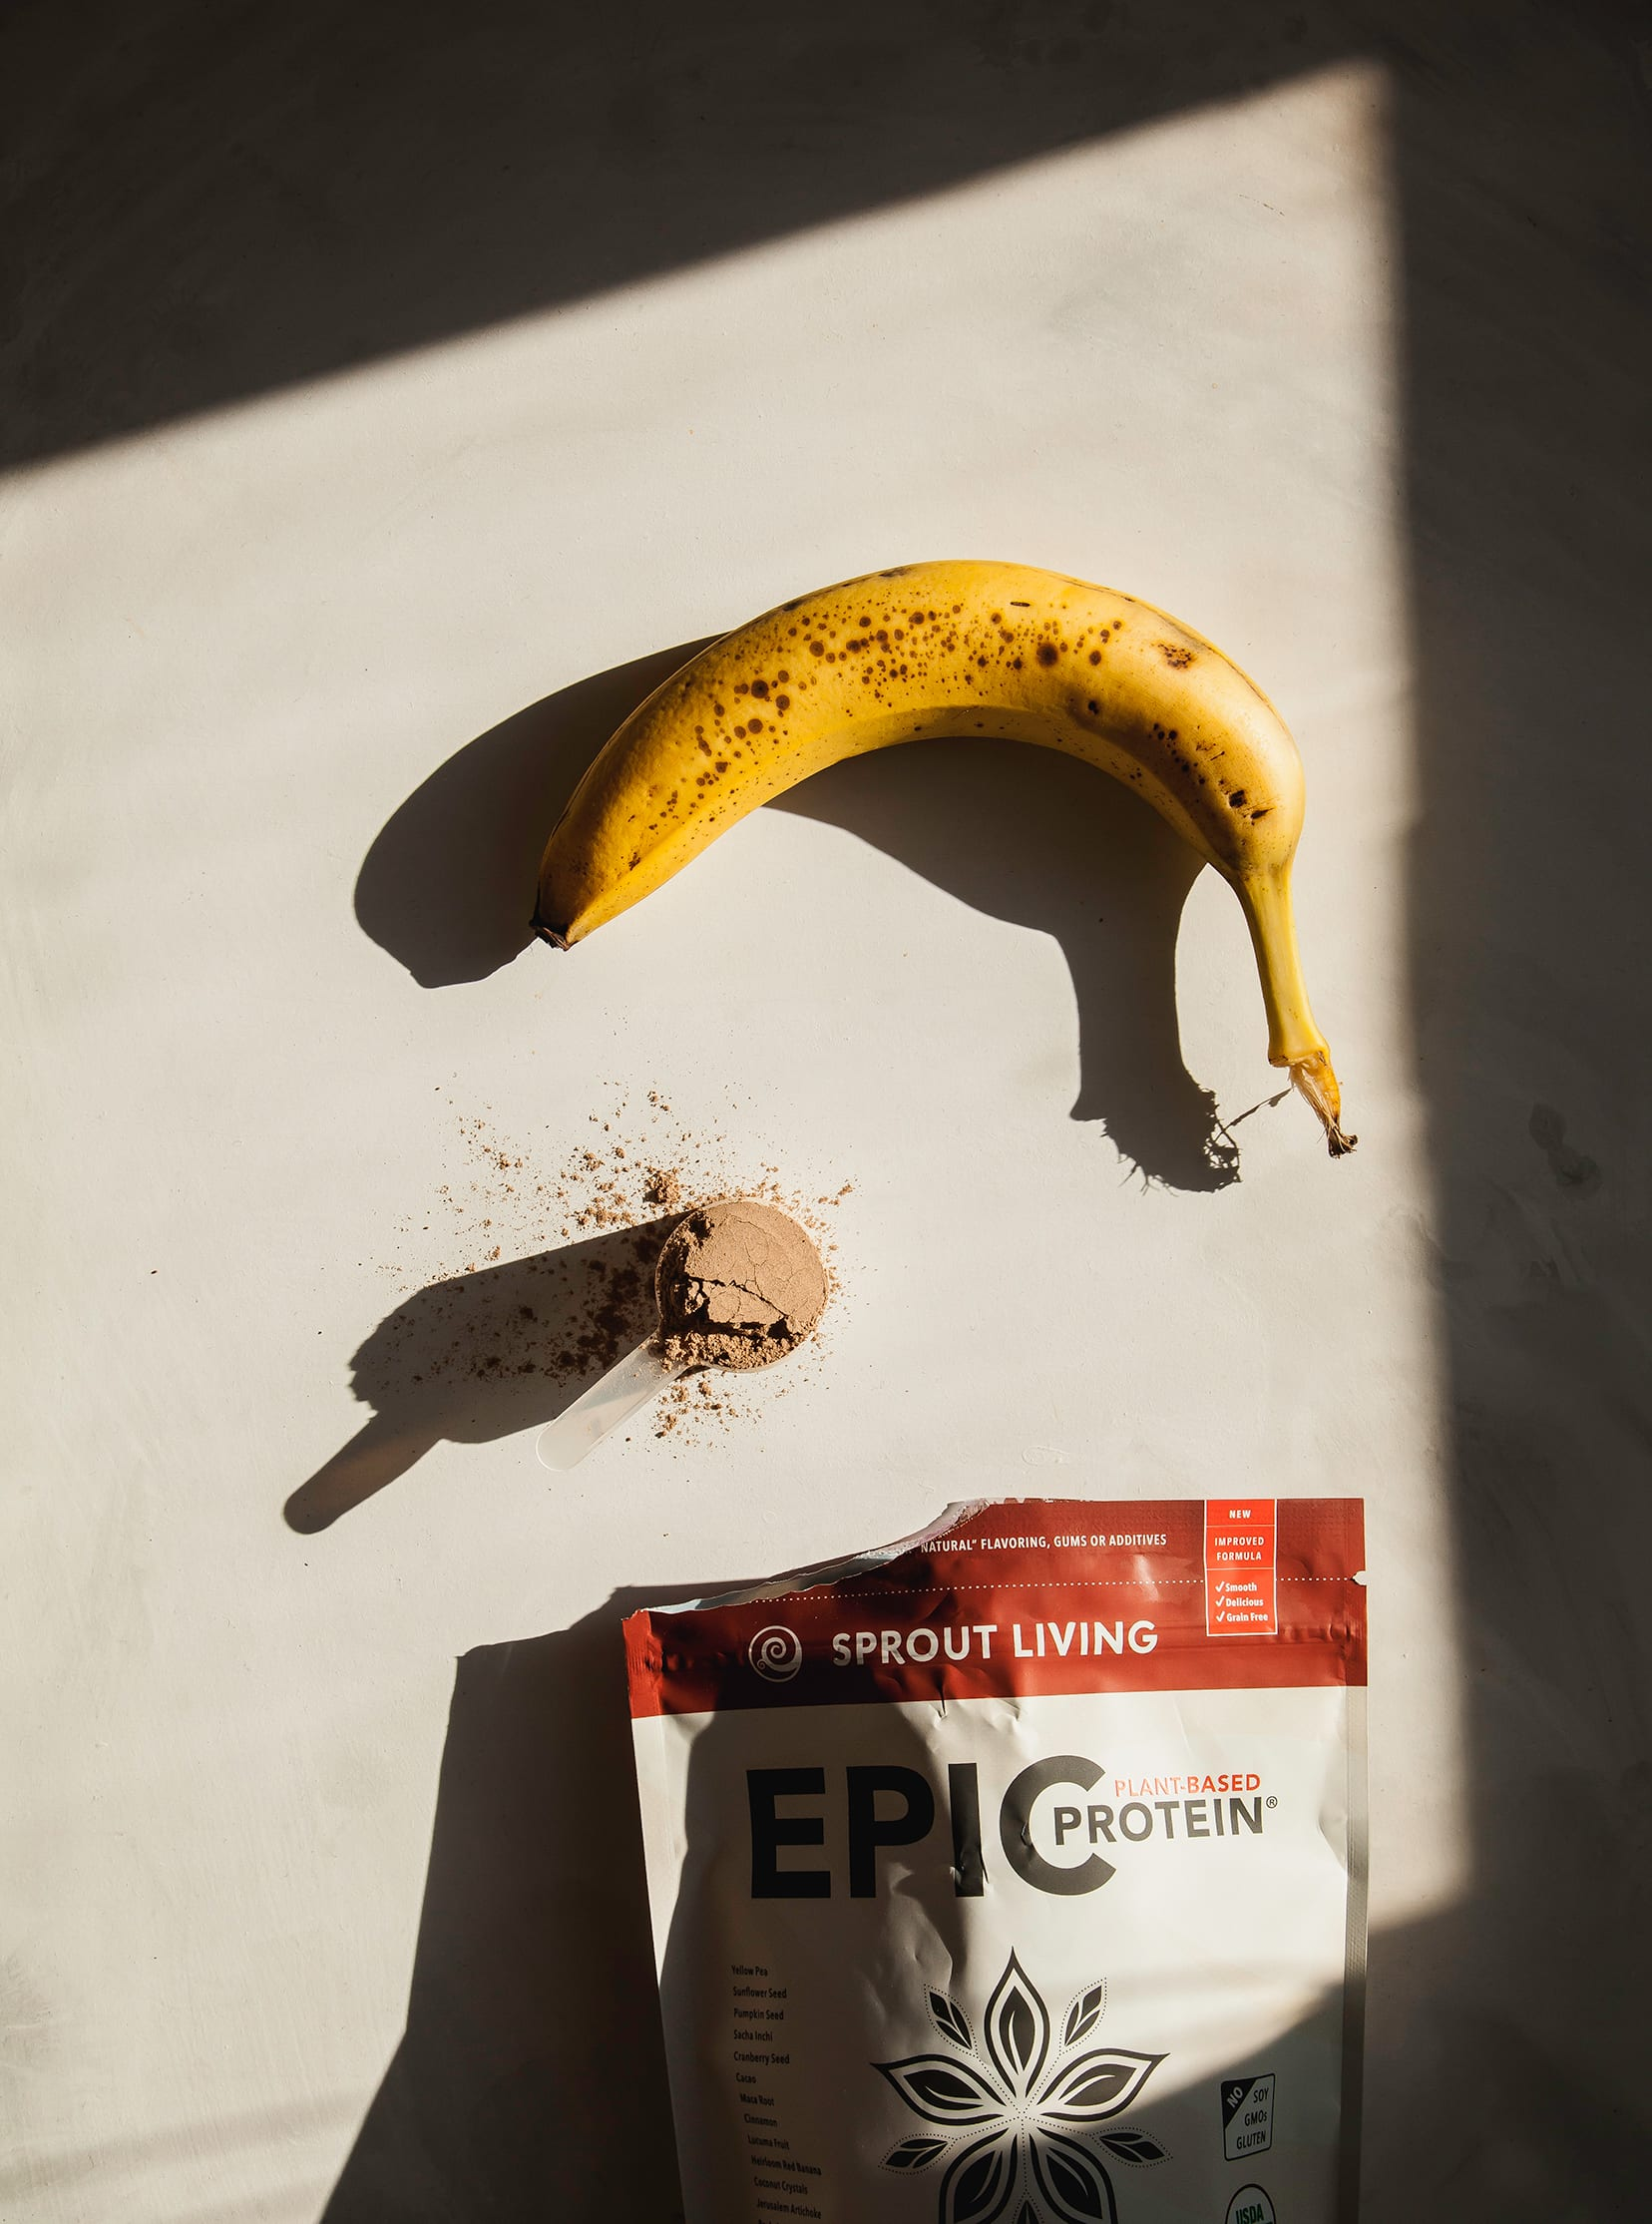 An overhead shot of a ripe banana and a scoop of protein powder in direct sunlight with strong shadows.